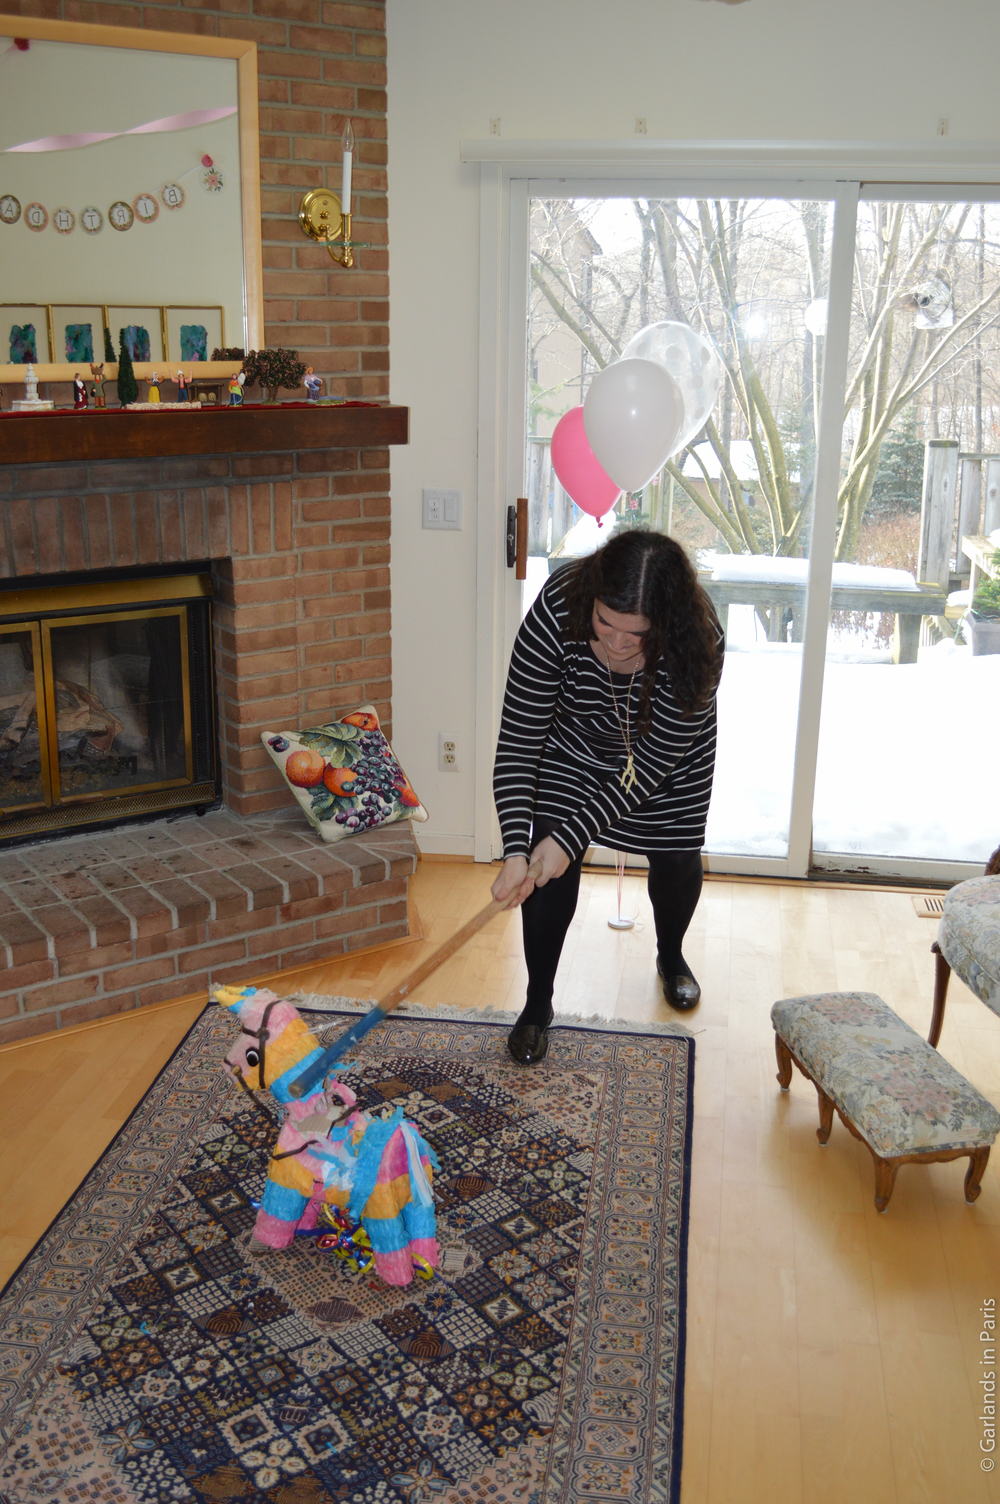 A Rosy Birthday Party pinata